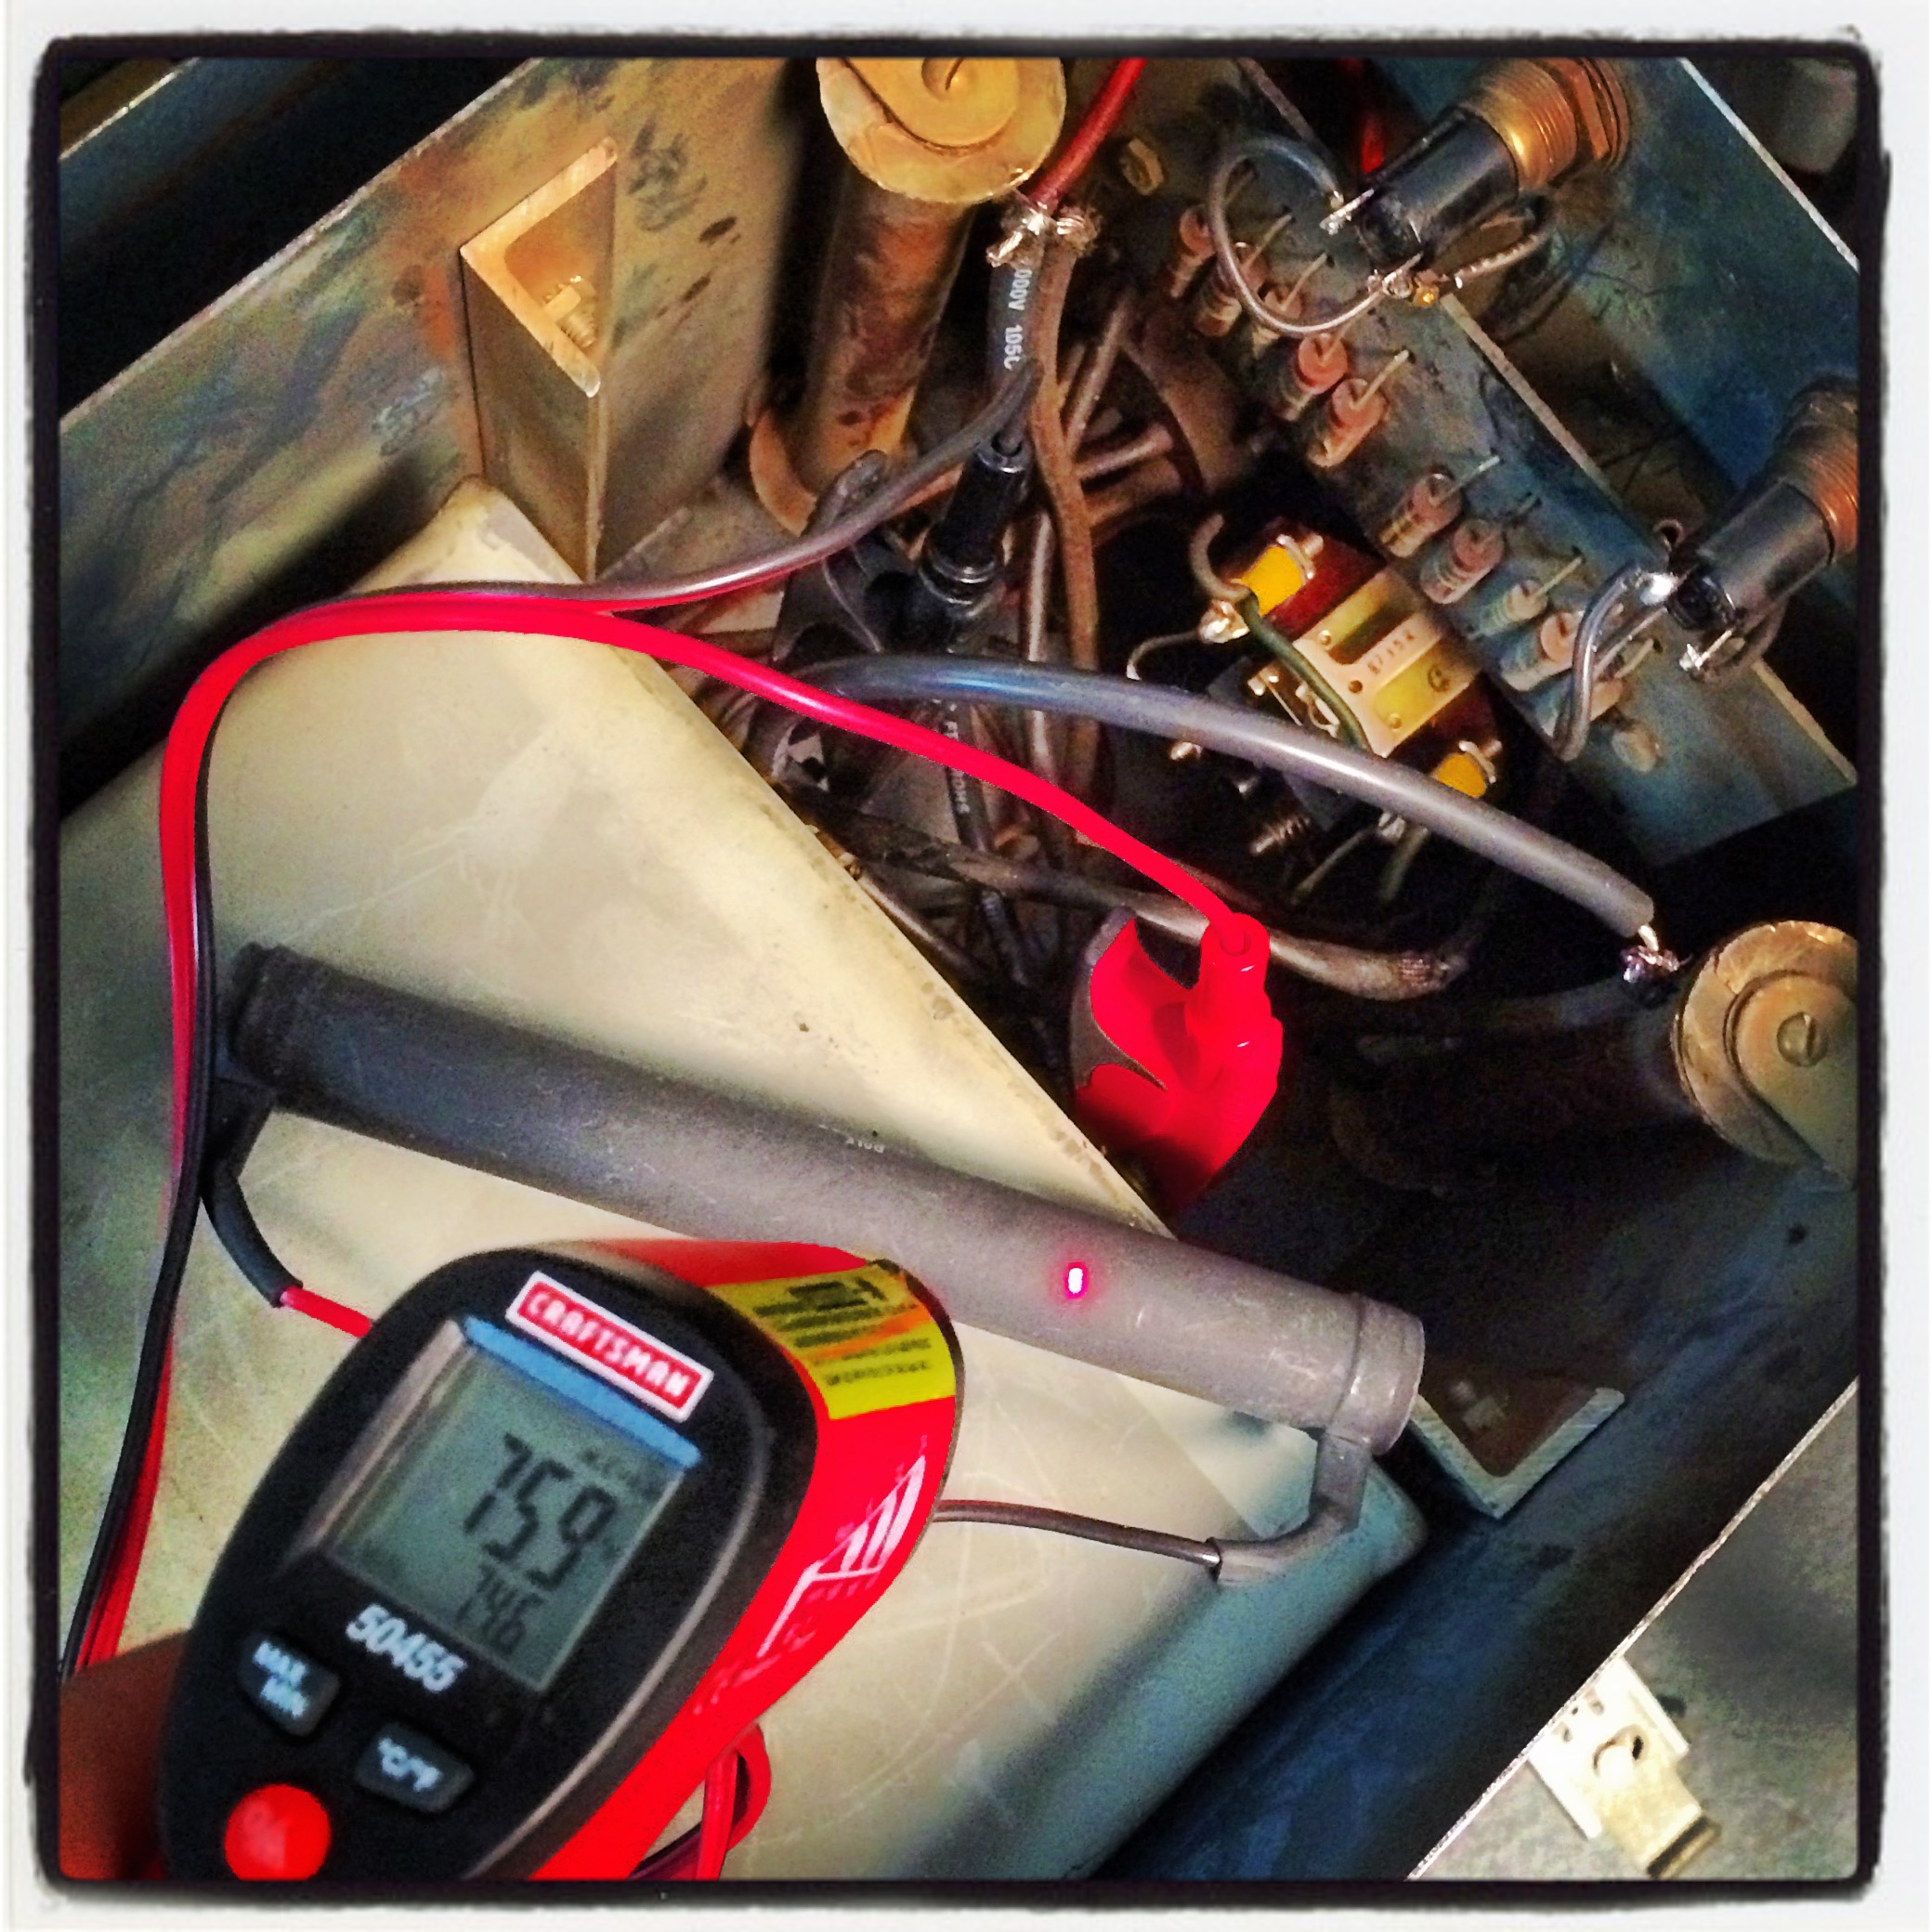 Monitoring resistor temperature during capacitor discharge.